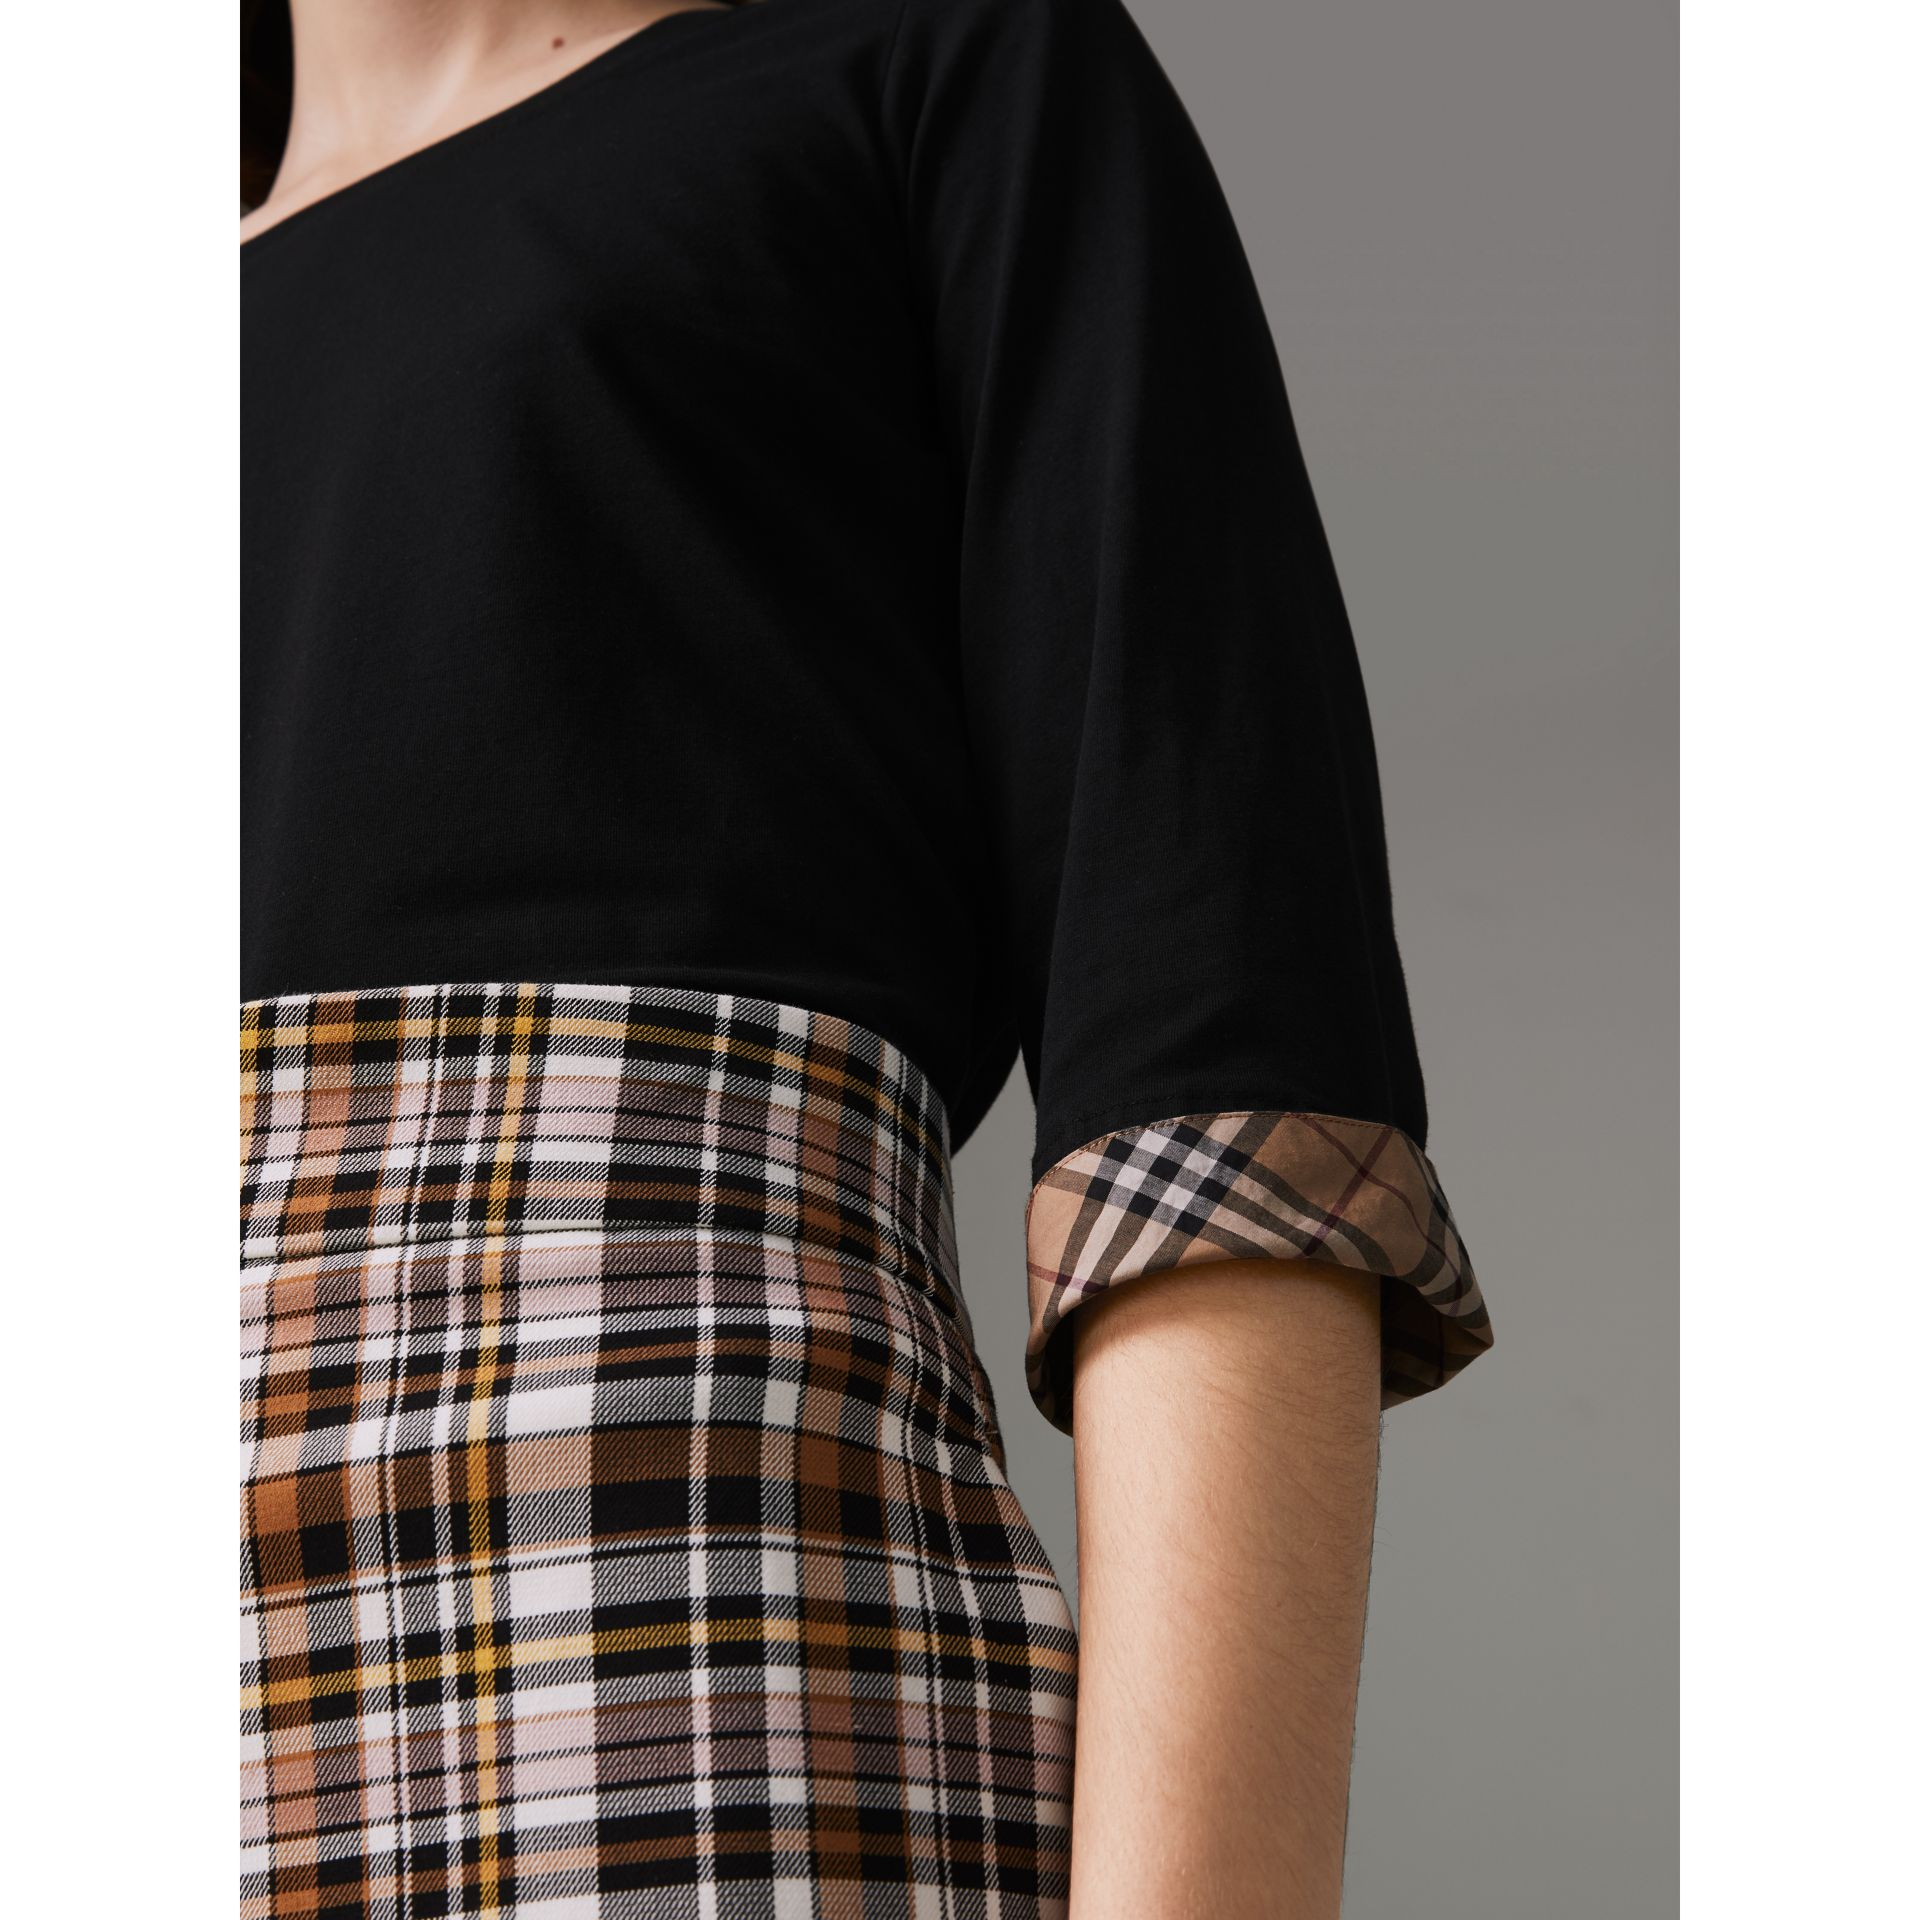 Check Detail Stretch Cotton Top in Black - Women | Burberry United Kingdom - gallery image 1